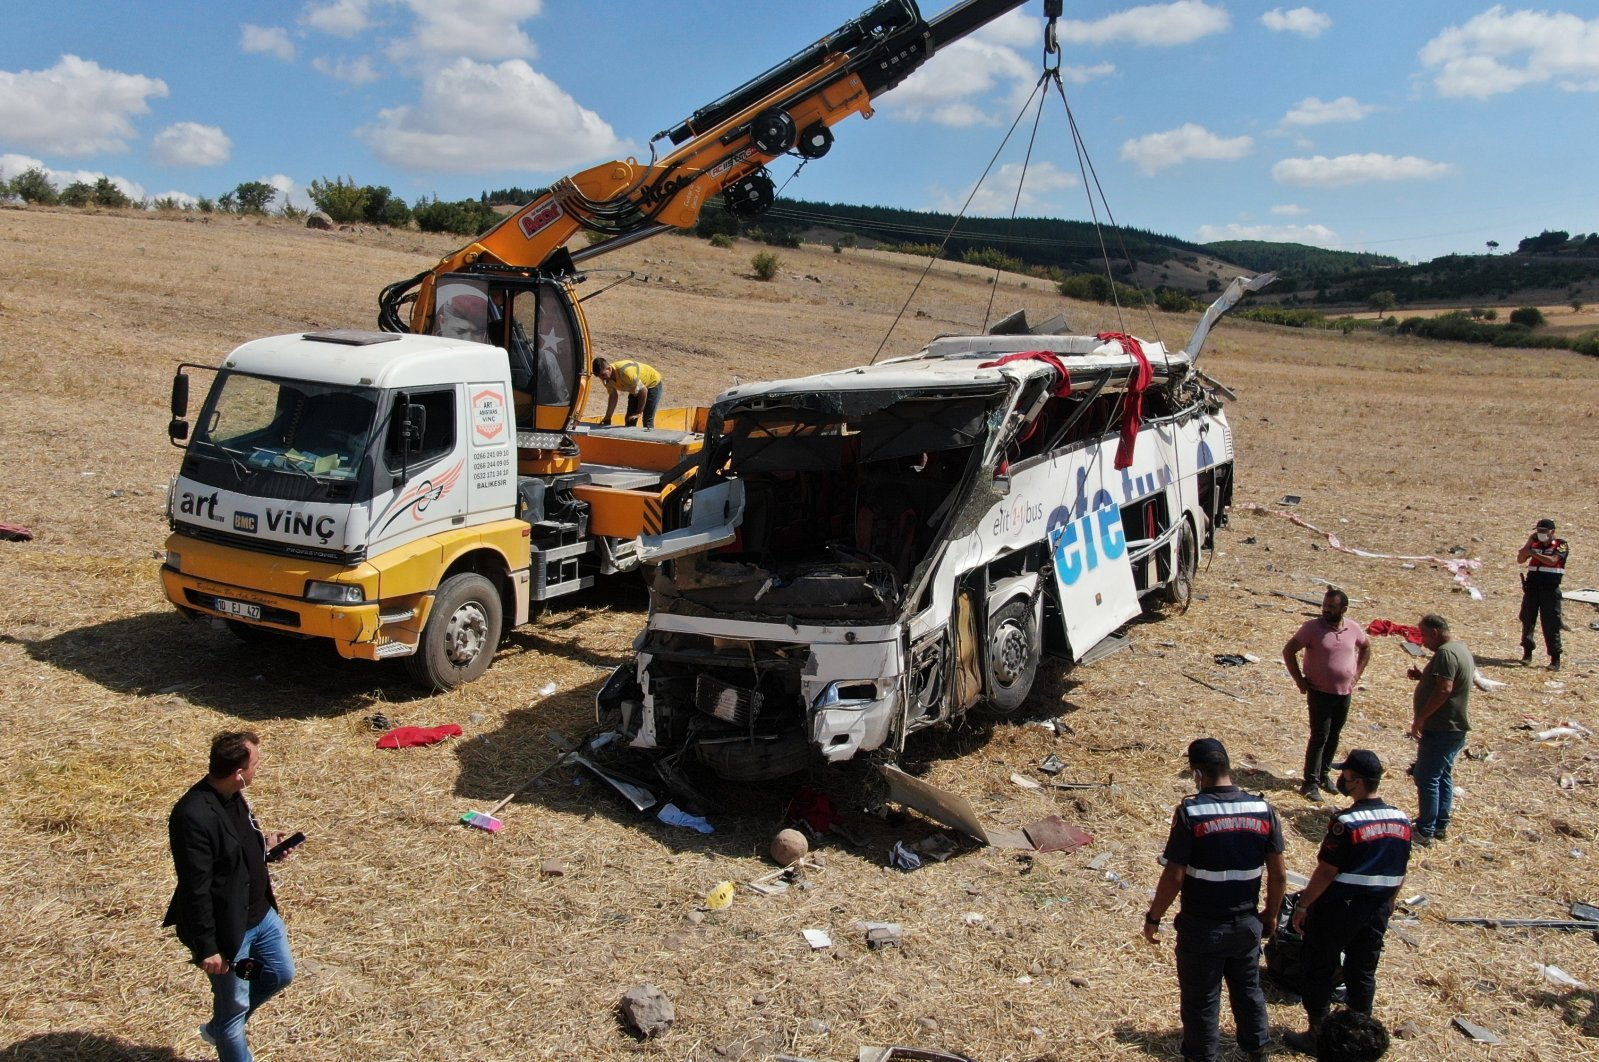 The wreckage of the bus in which fifteen were killed is being removed, in Balıkesir, western Turkey, Aug. 8, 2021. (IHA PHOTO)